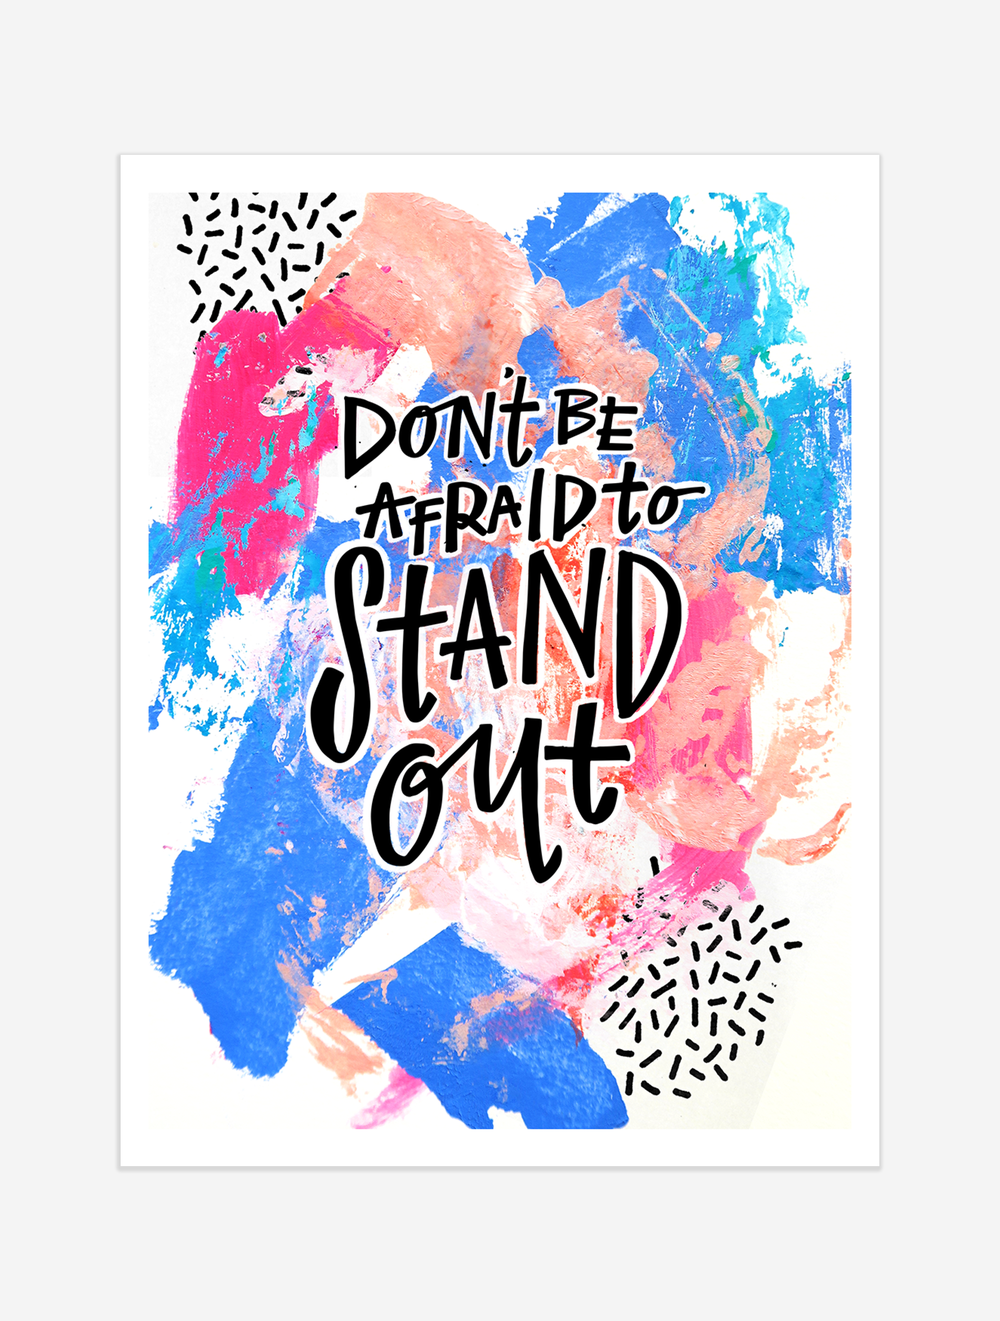 A reminder to trust your eye and that standing out is actually the whole point! $25 giclee print available at the Made Vibrant Art Shop.